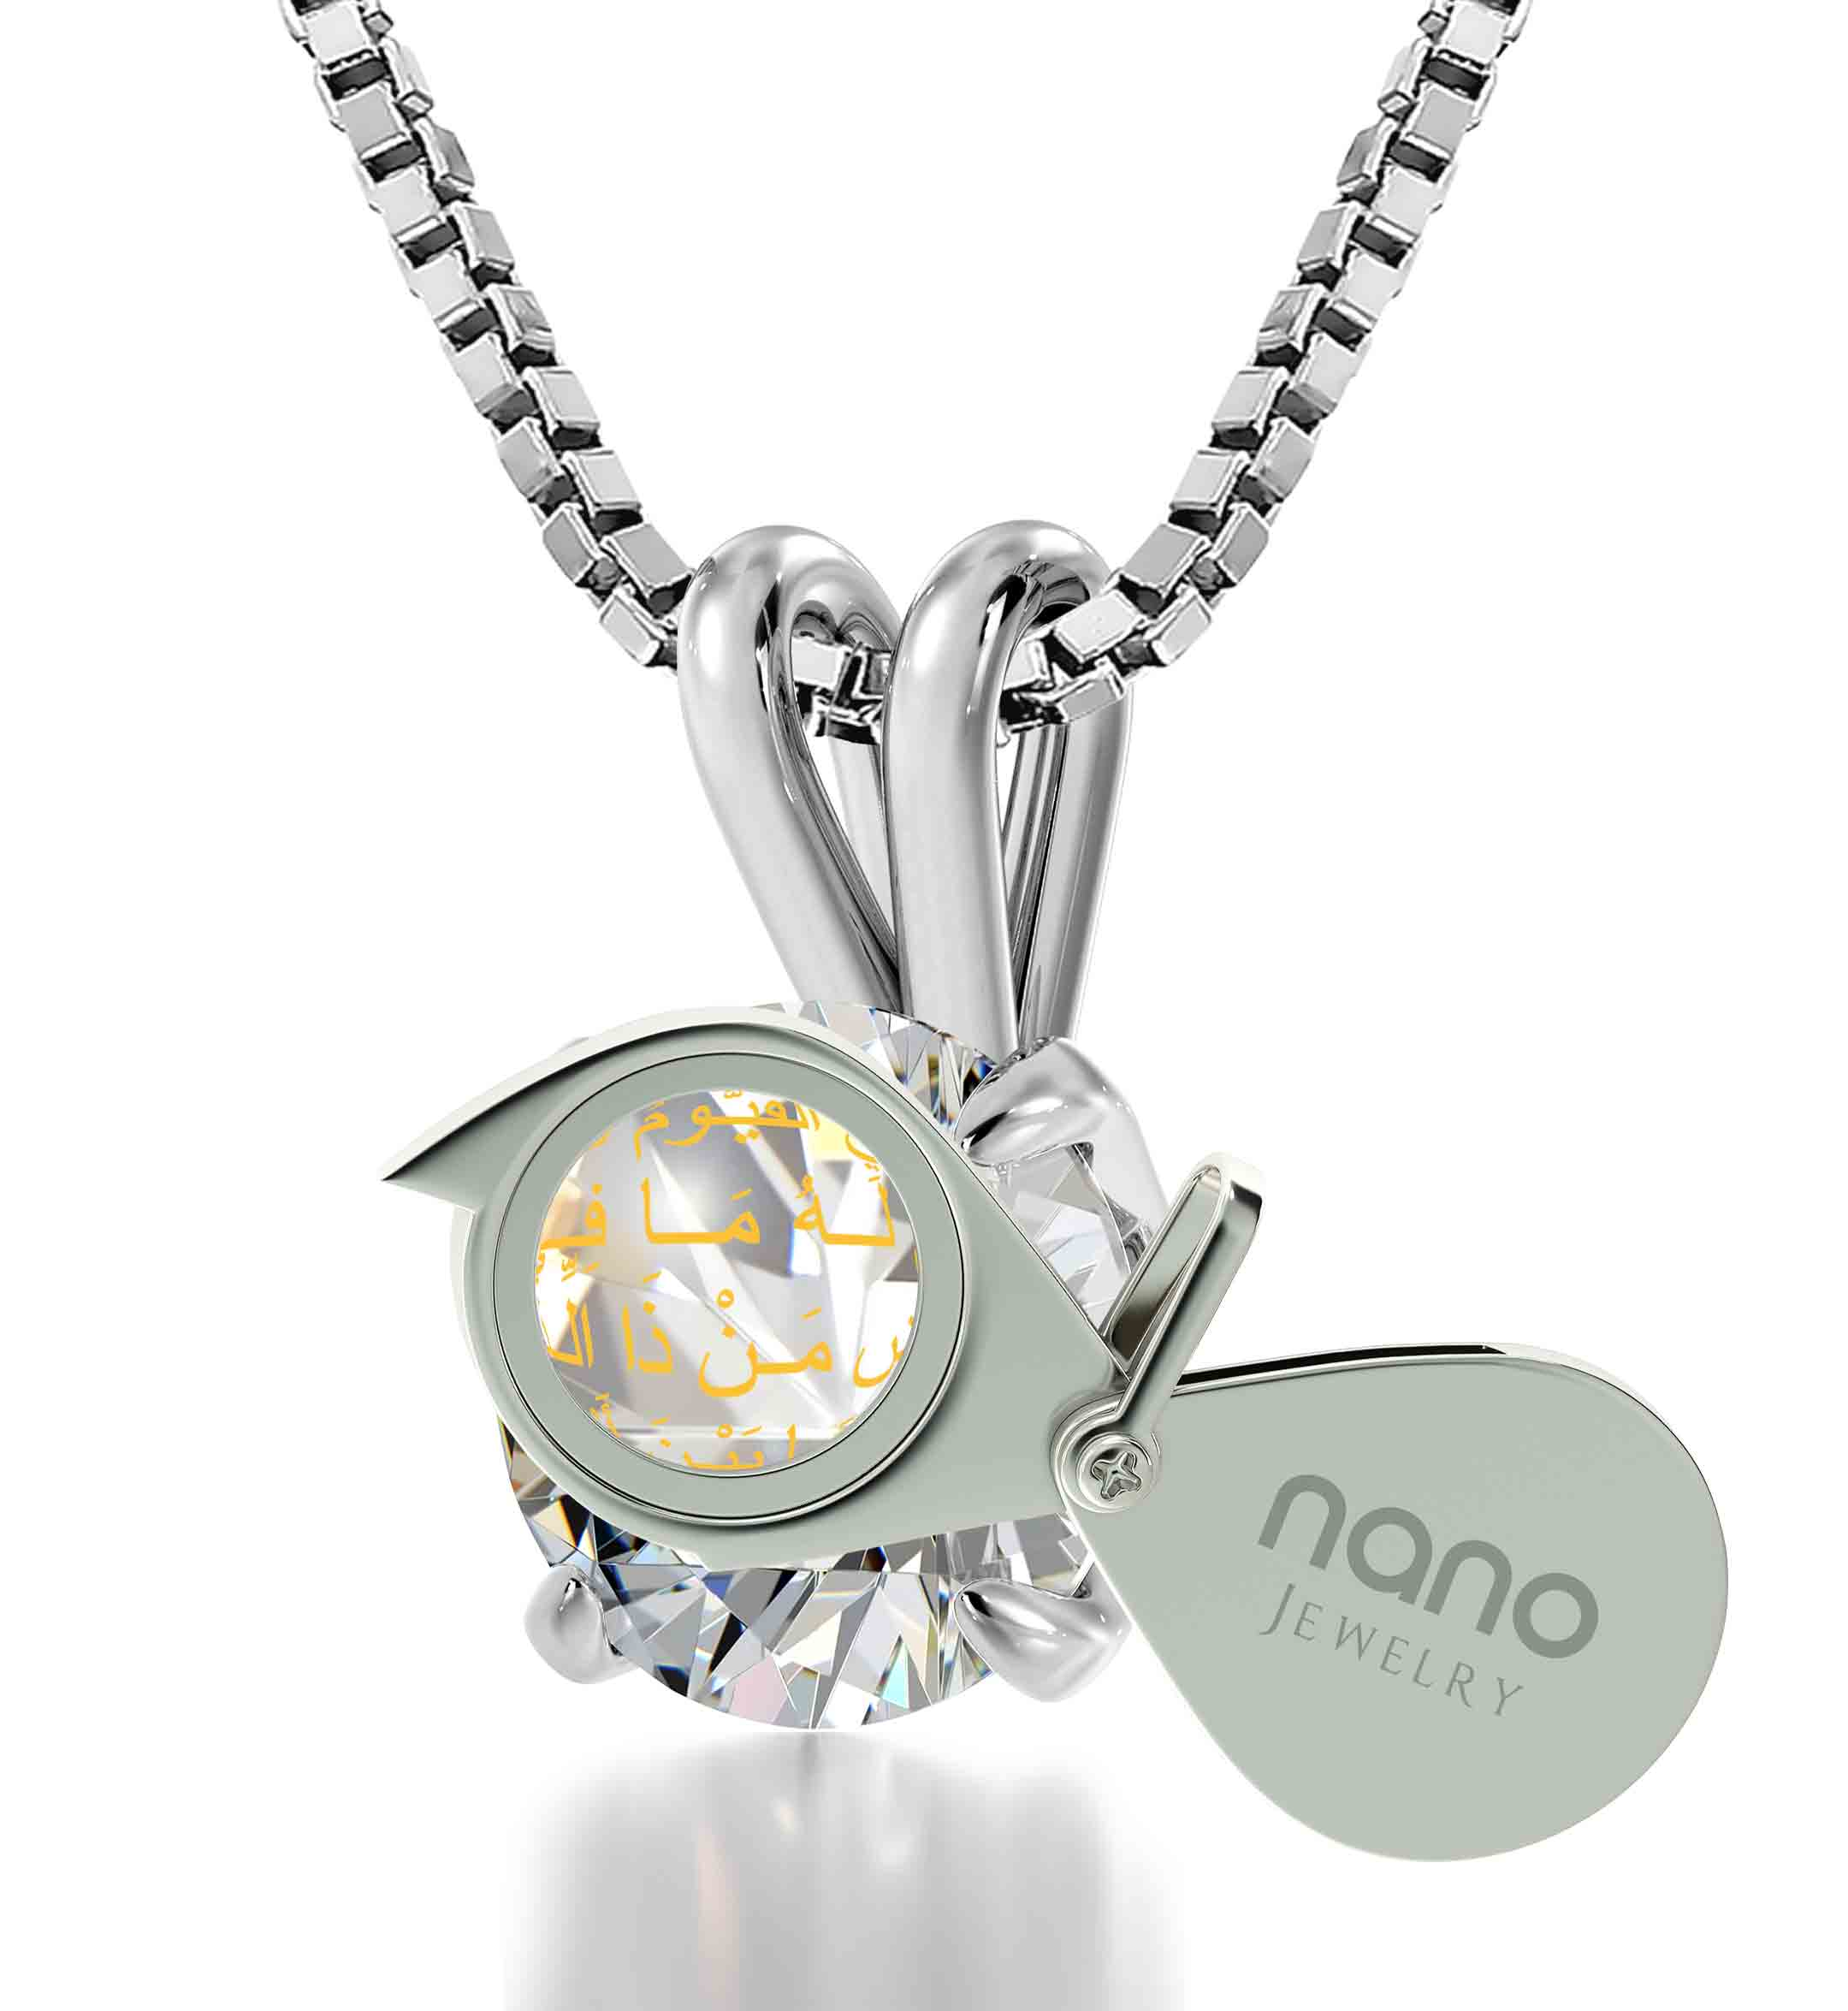 Islam Jewelry: Solitaire - Nano Jewelry